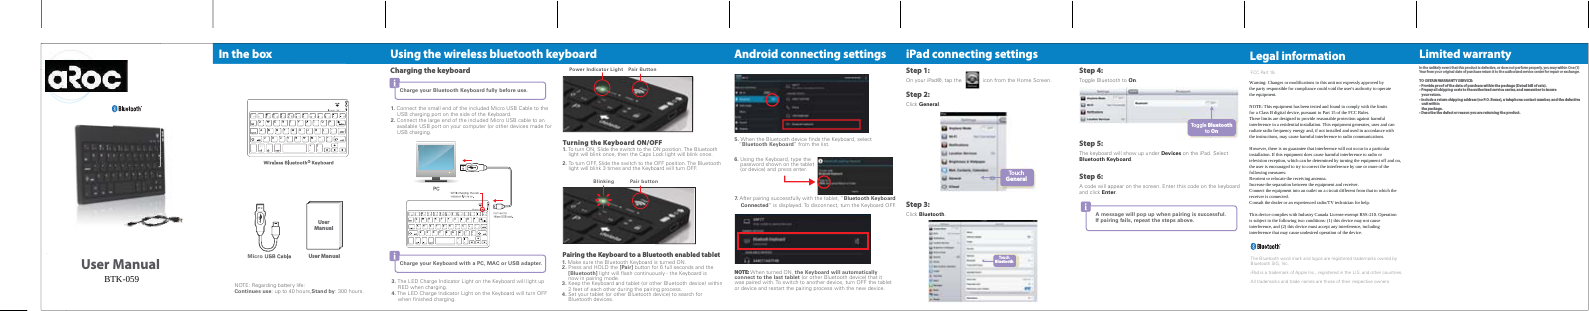 Bluetooth keyboard connected to PC but can't type? 2248694-0-png.png